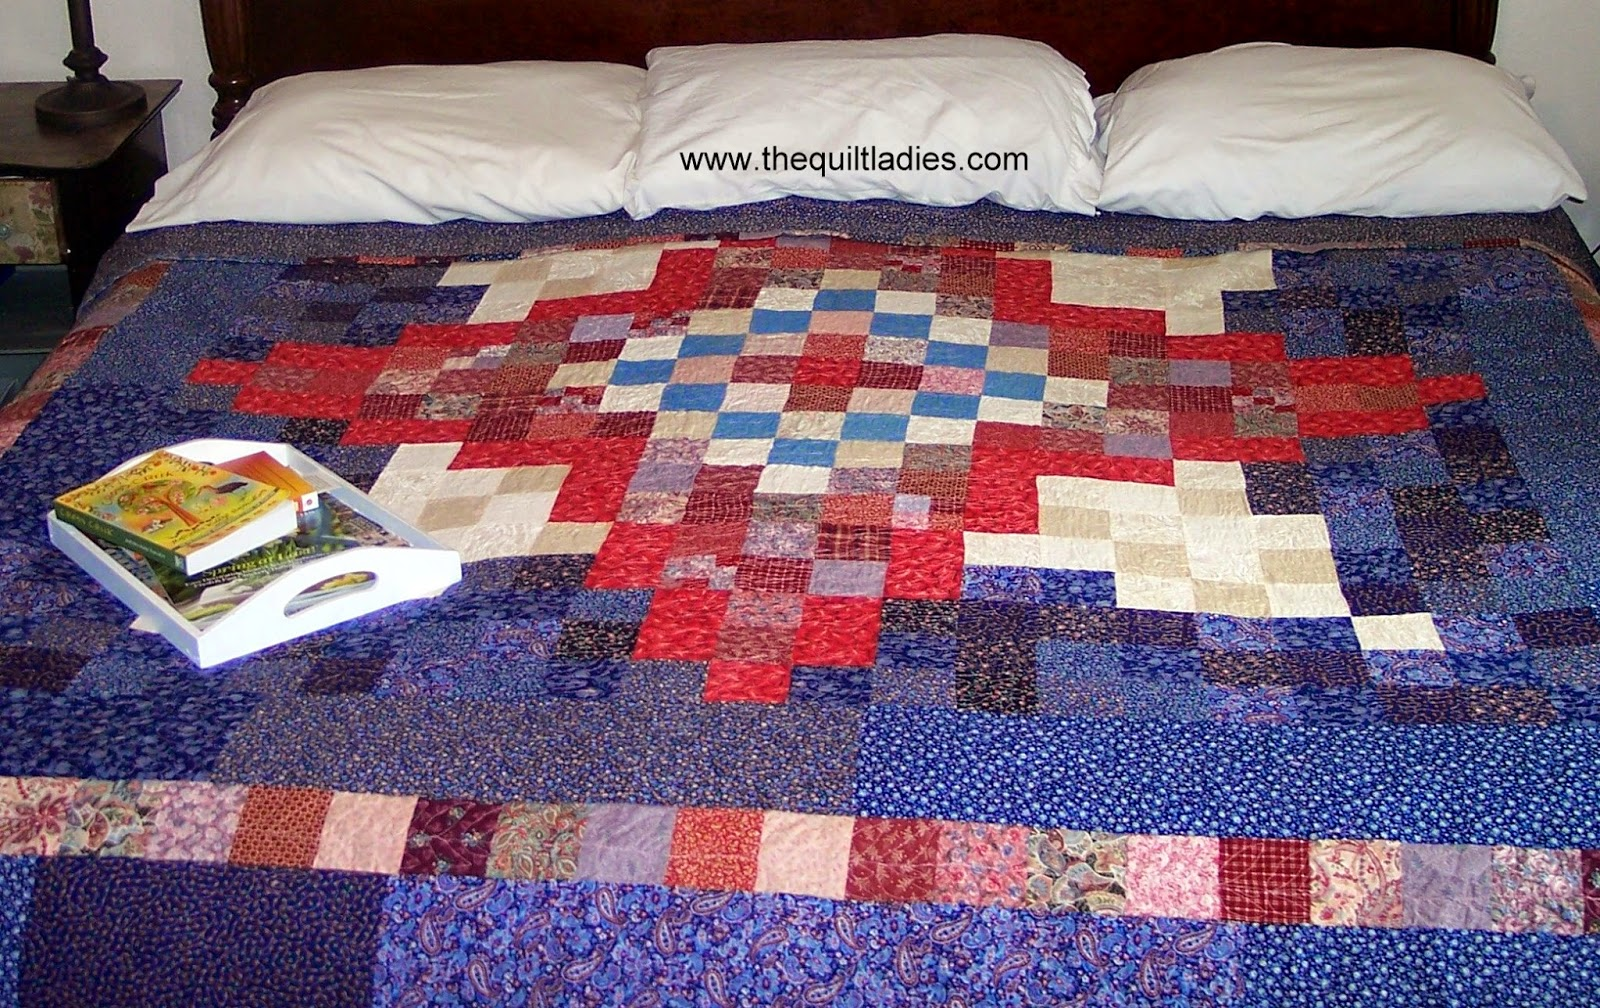 Quilts from The Quilt Ladies